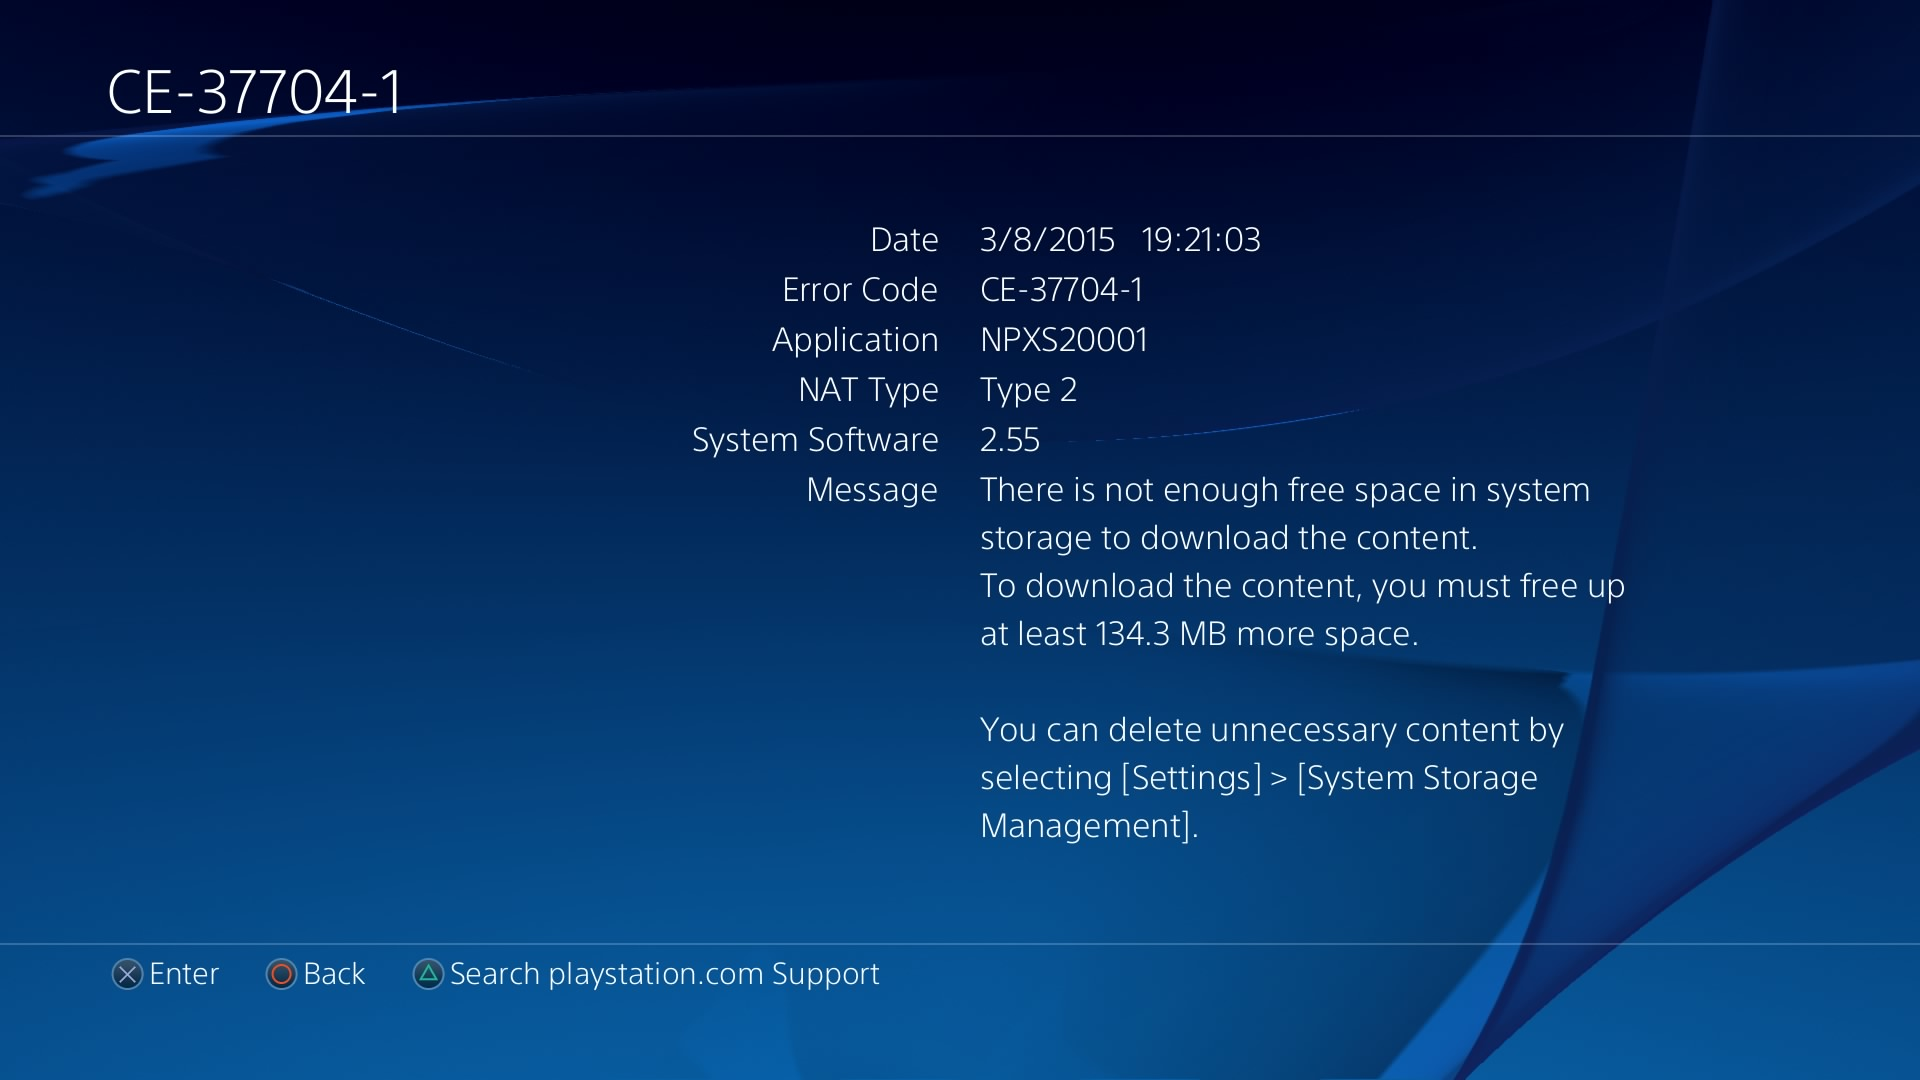 PlayStation 4 Users Experiencing New Free Space Error Code CE-37704